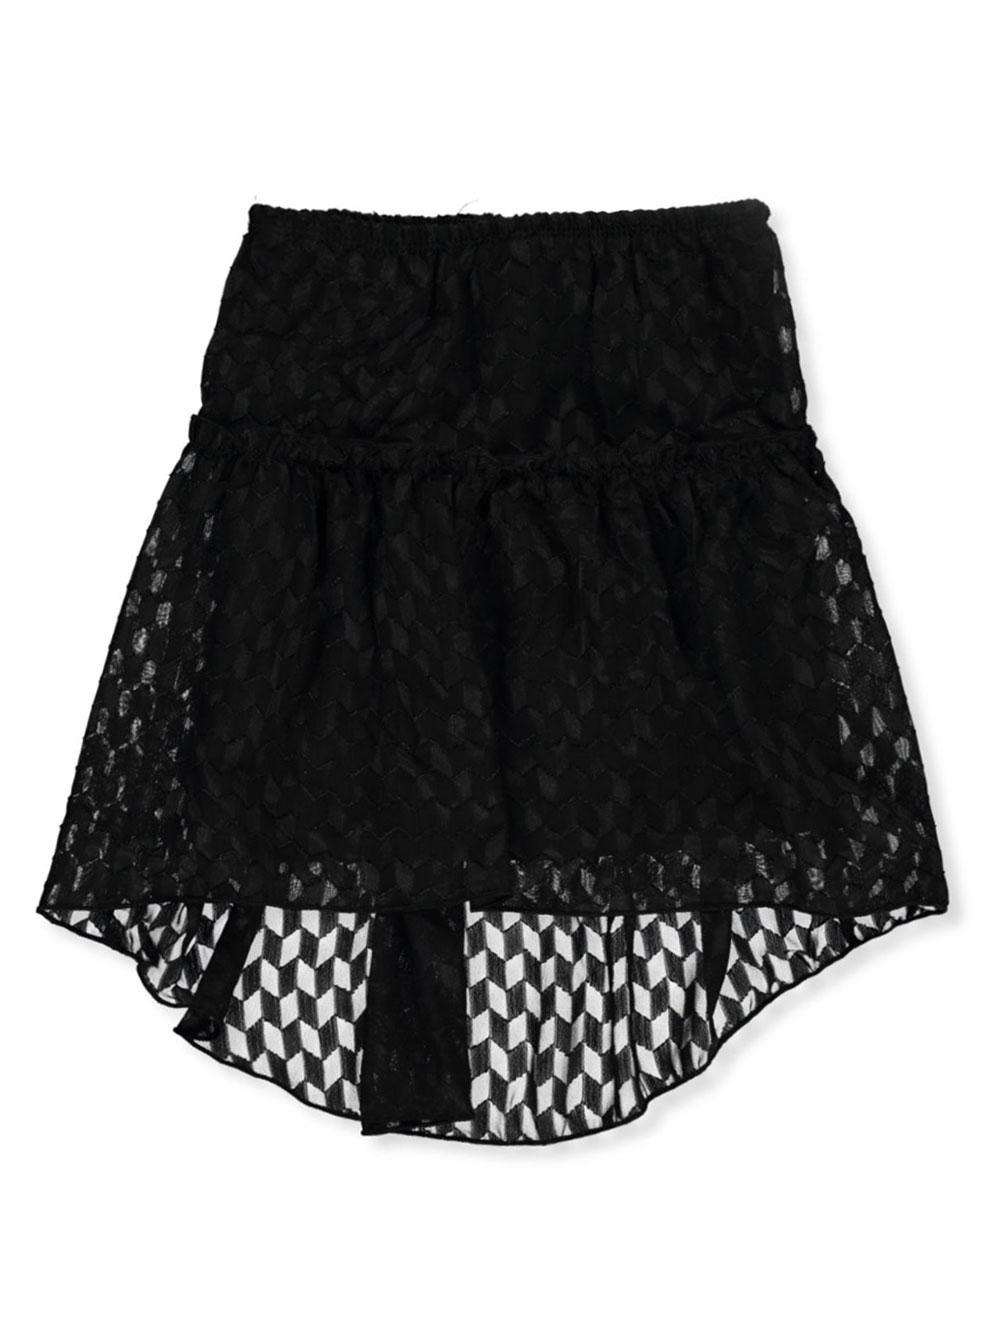 Size 7 Skirts for Girls